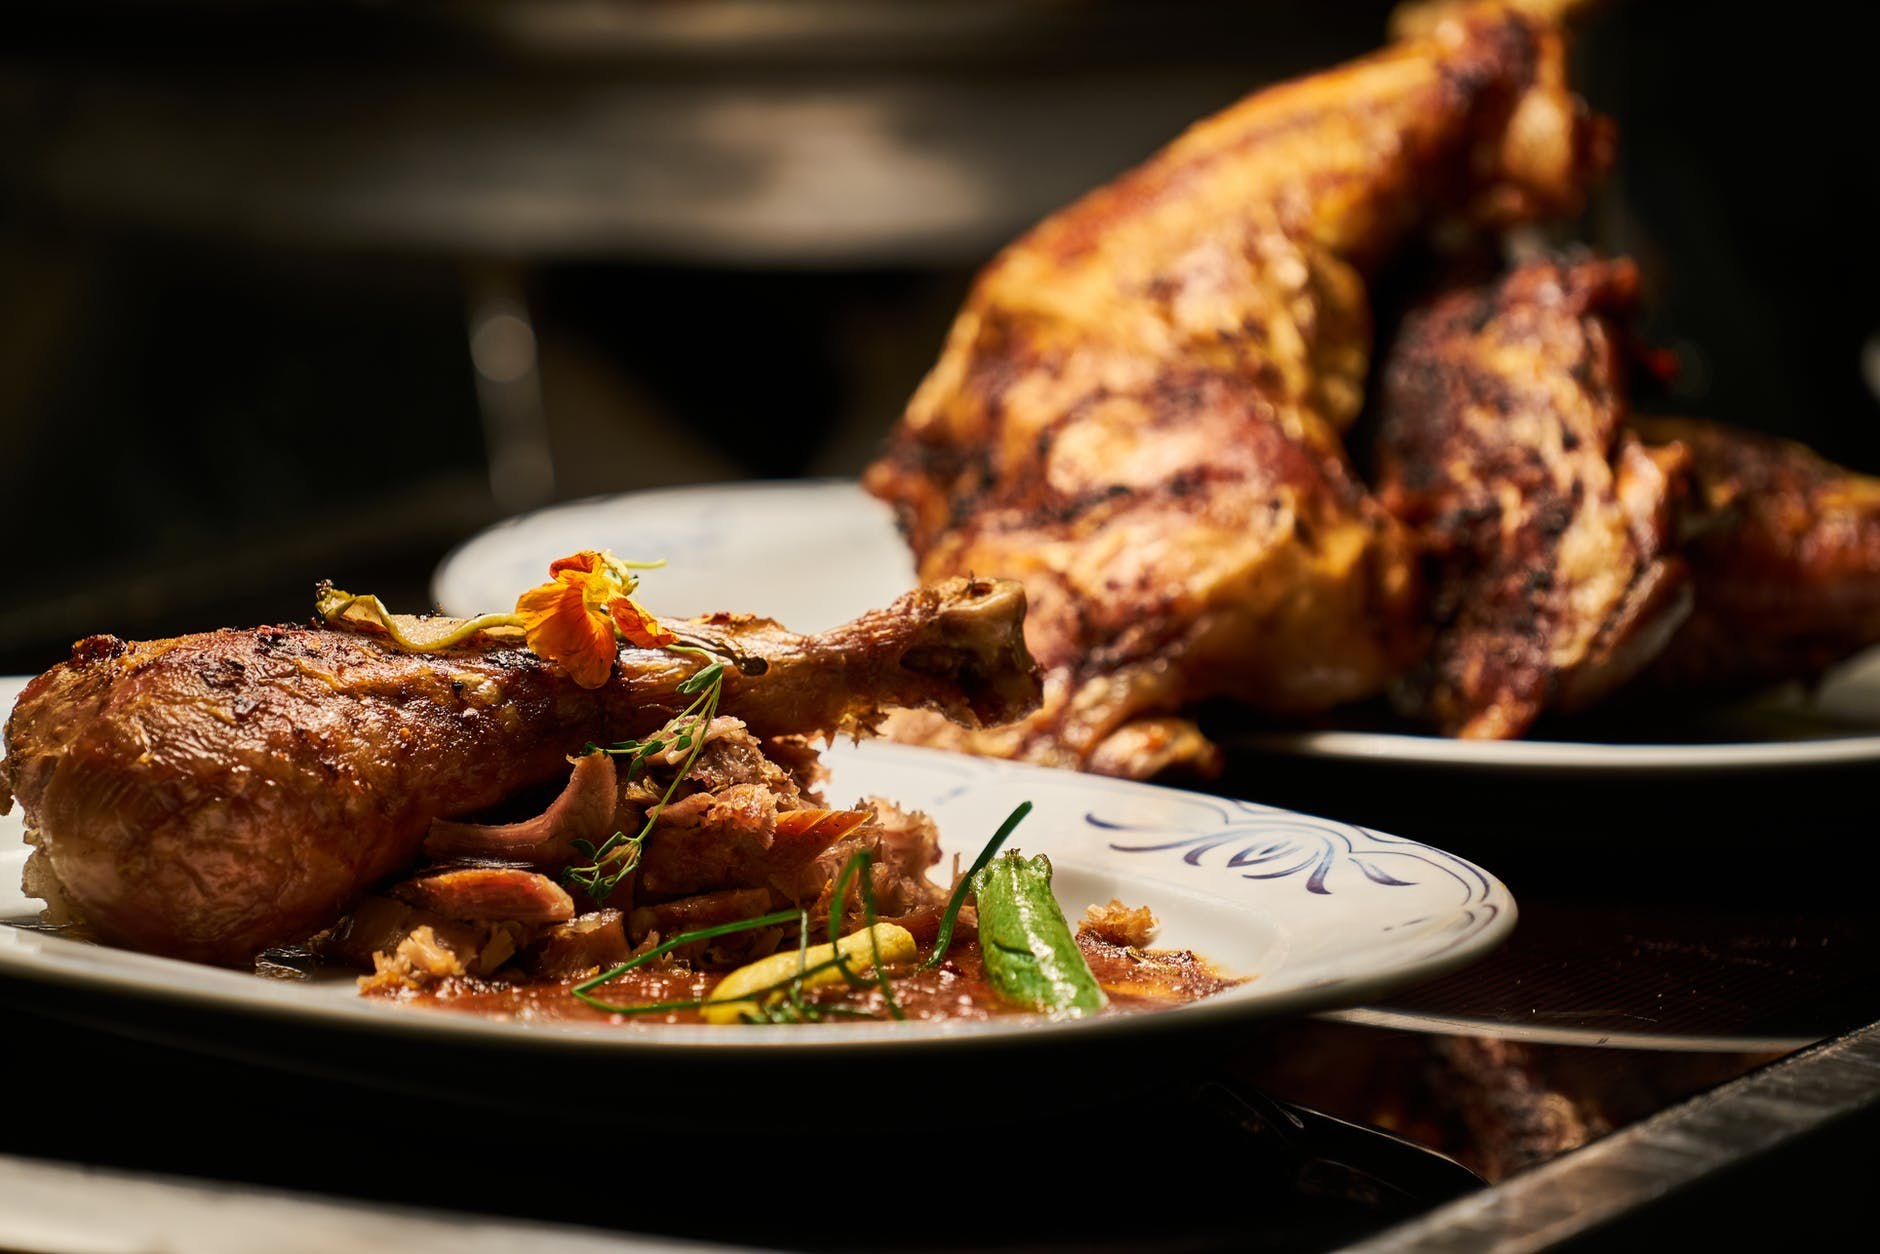 How to eat meat during a bird flu outbreak